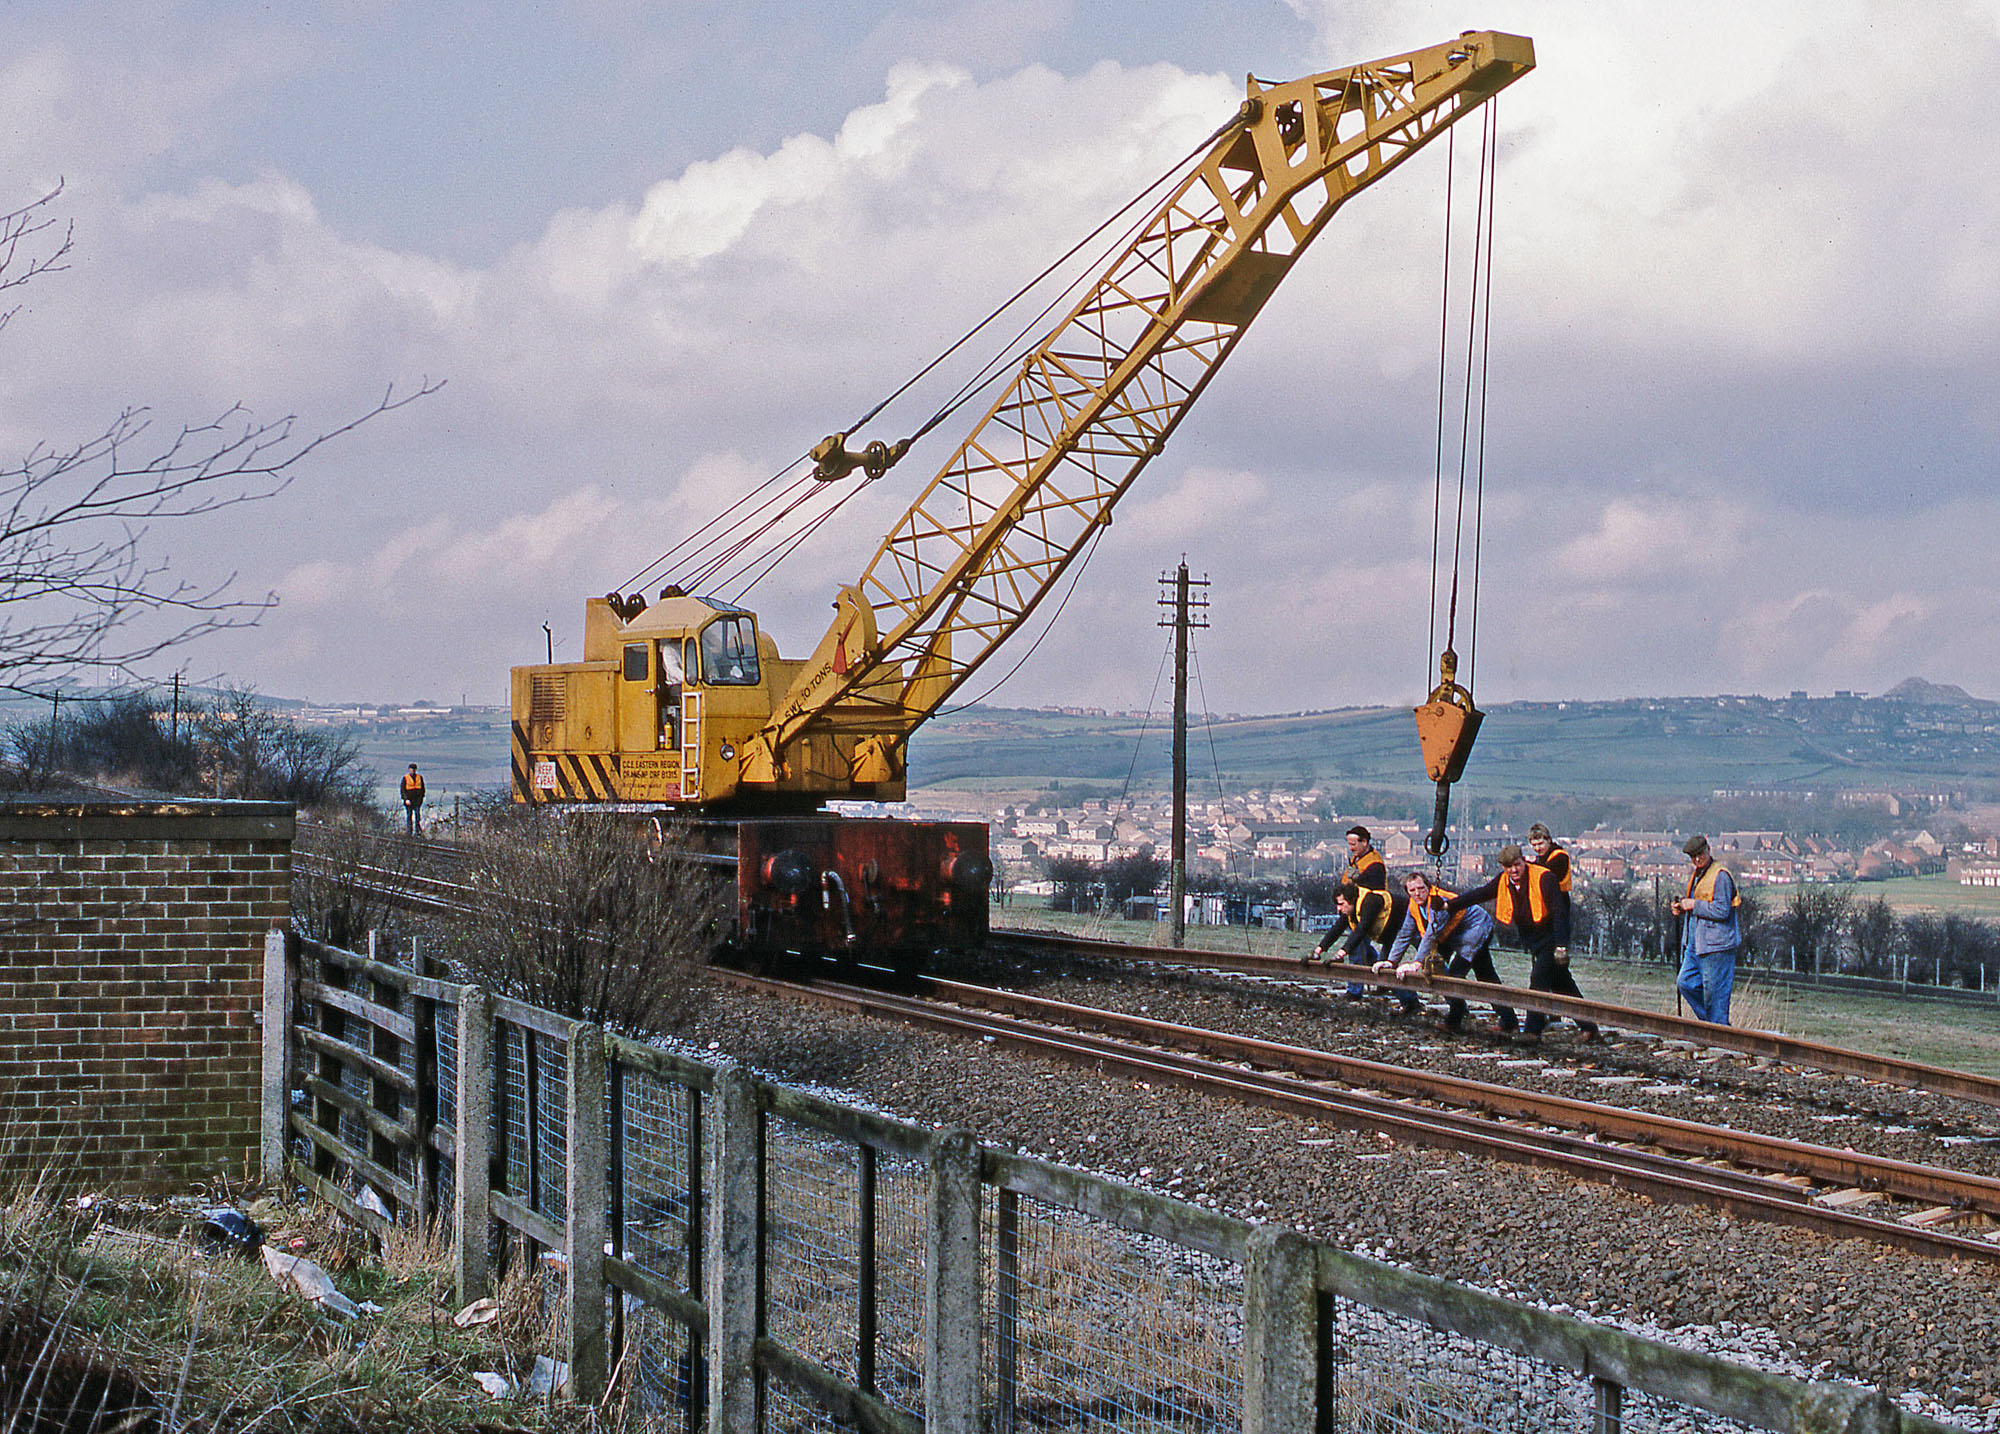 Track lifting at the site of West Stanley station on 27 March 1984. Photo copyright Stephen McGahon